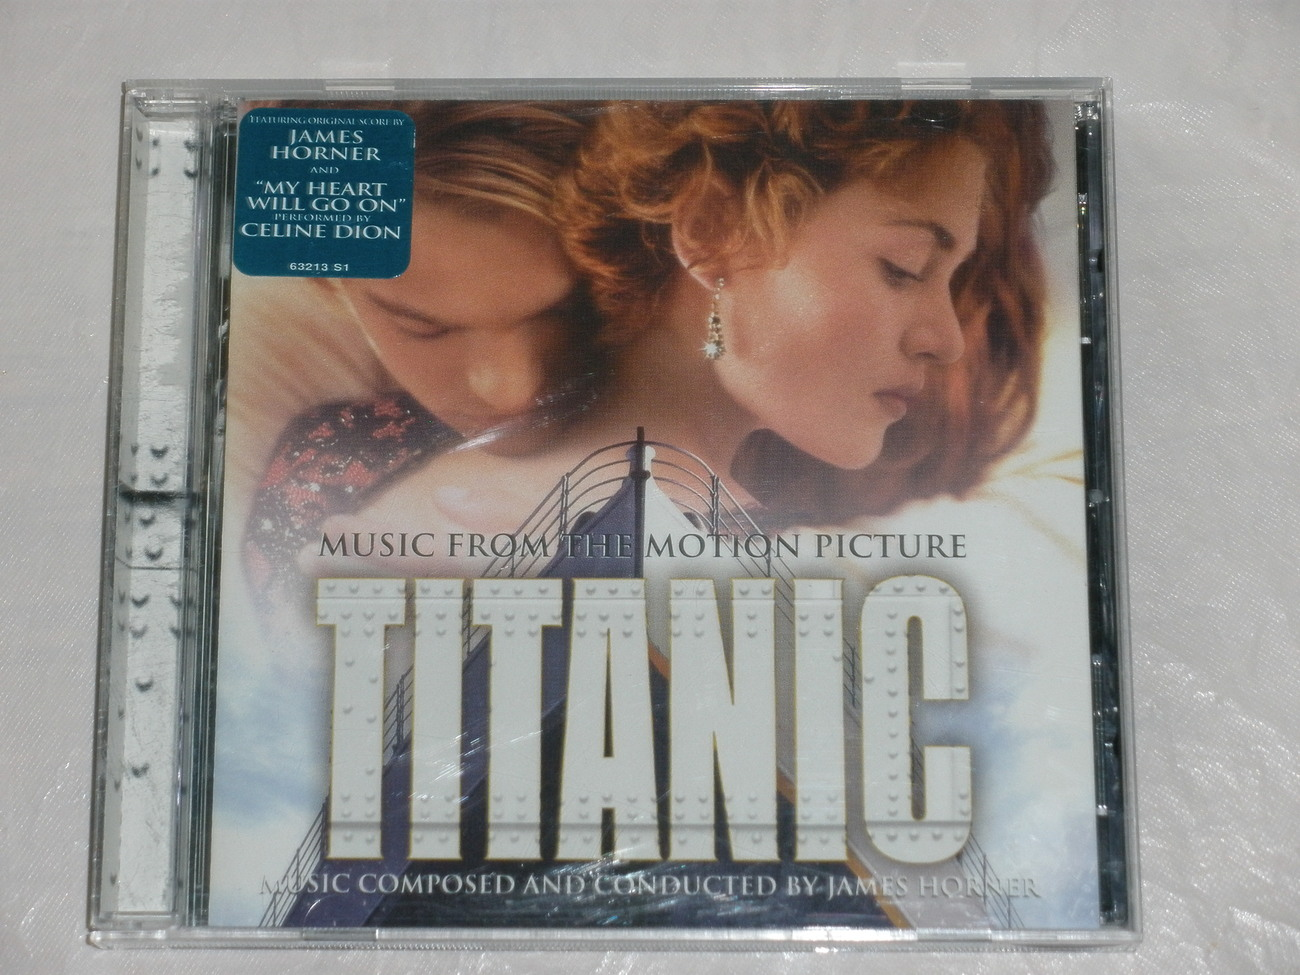 Titanic - Music from the Motion Picture - CD